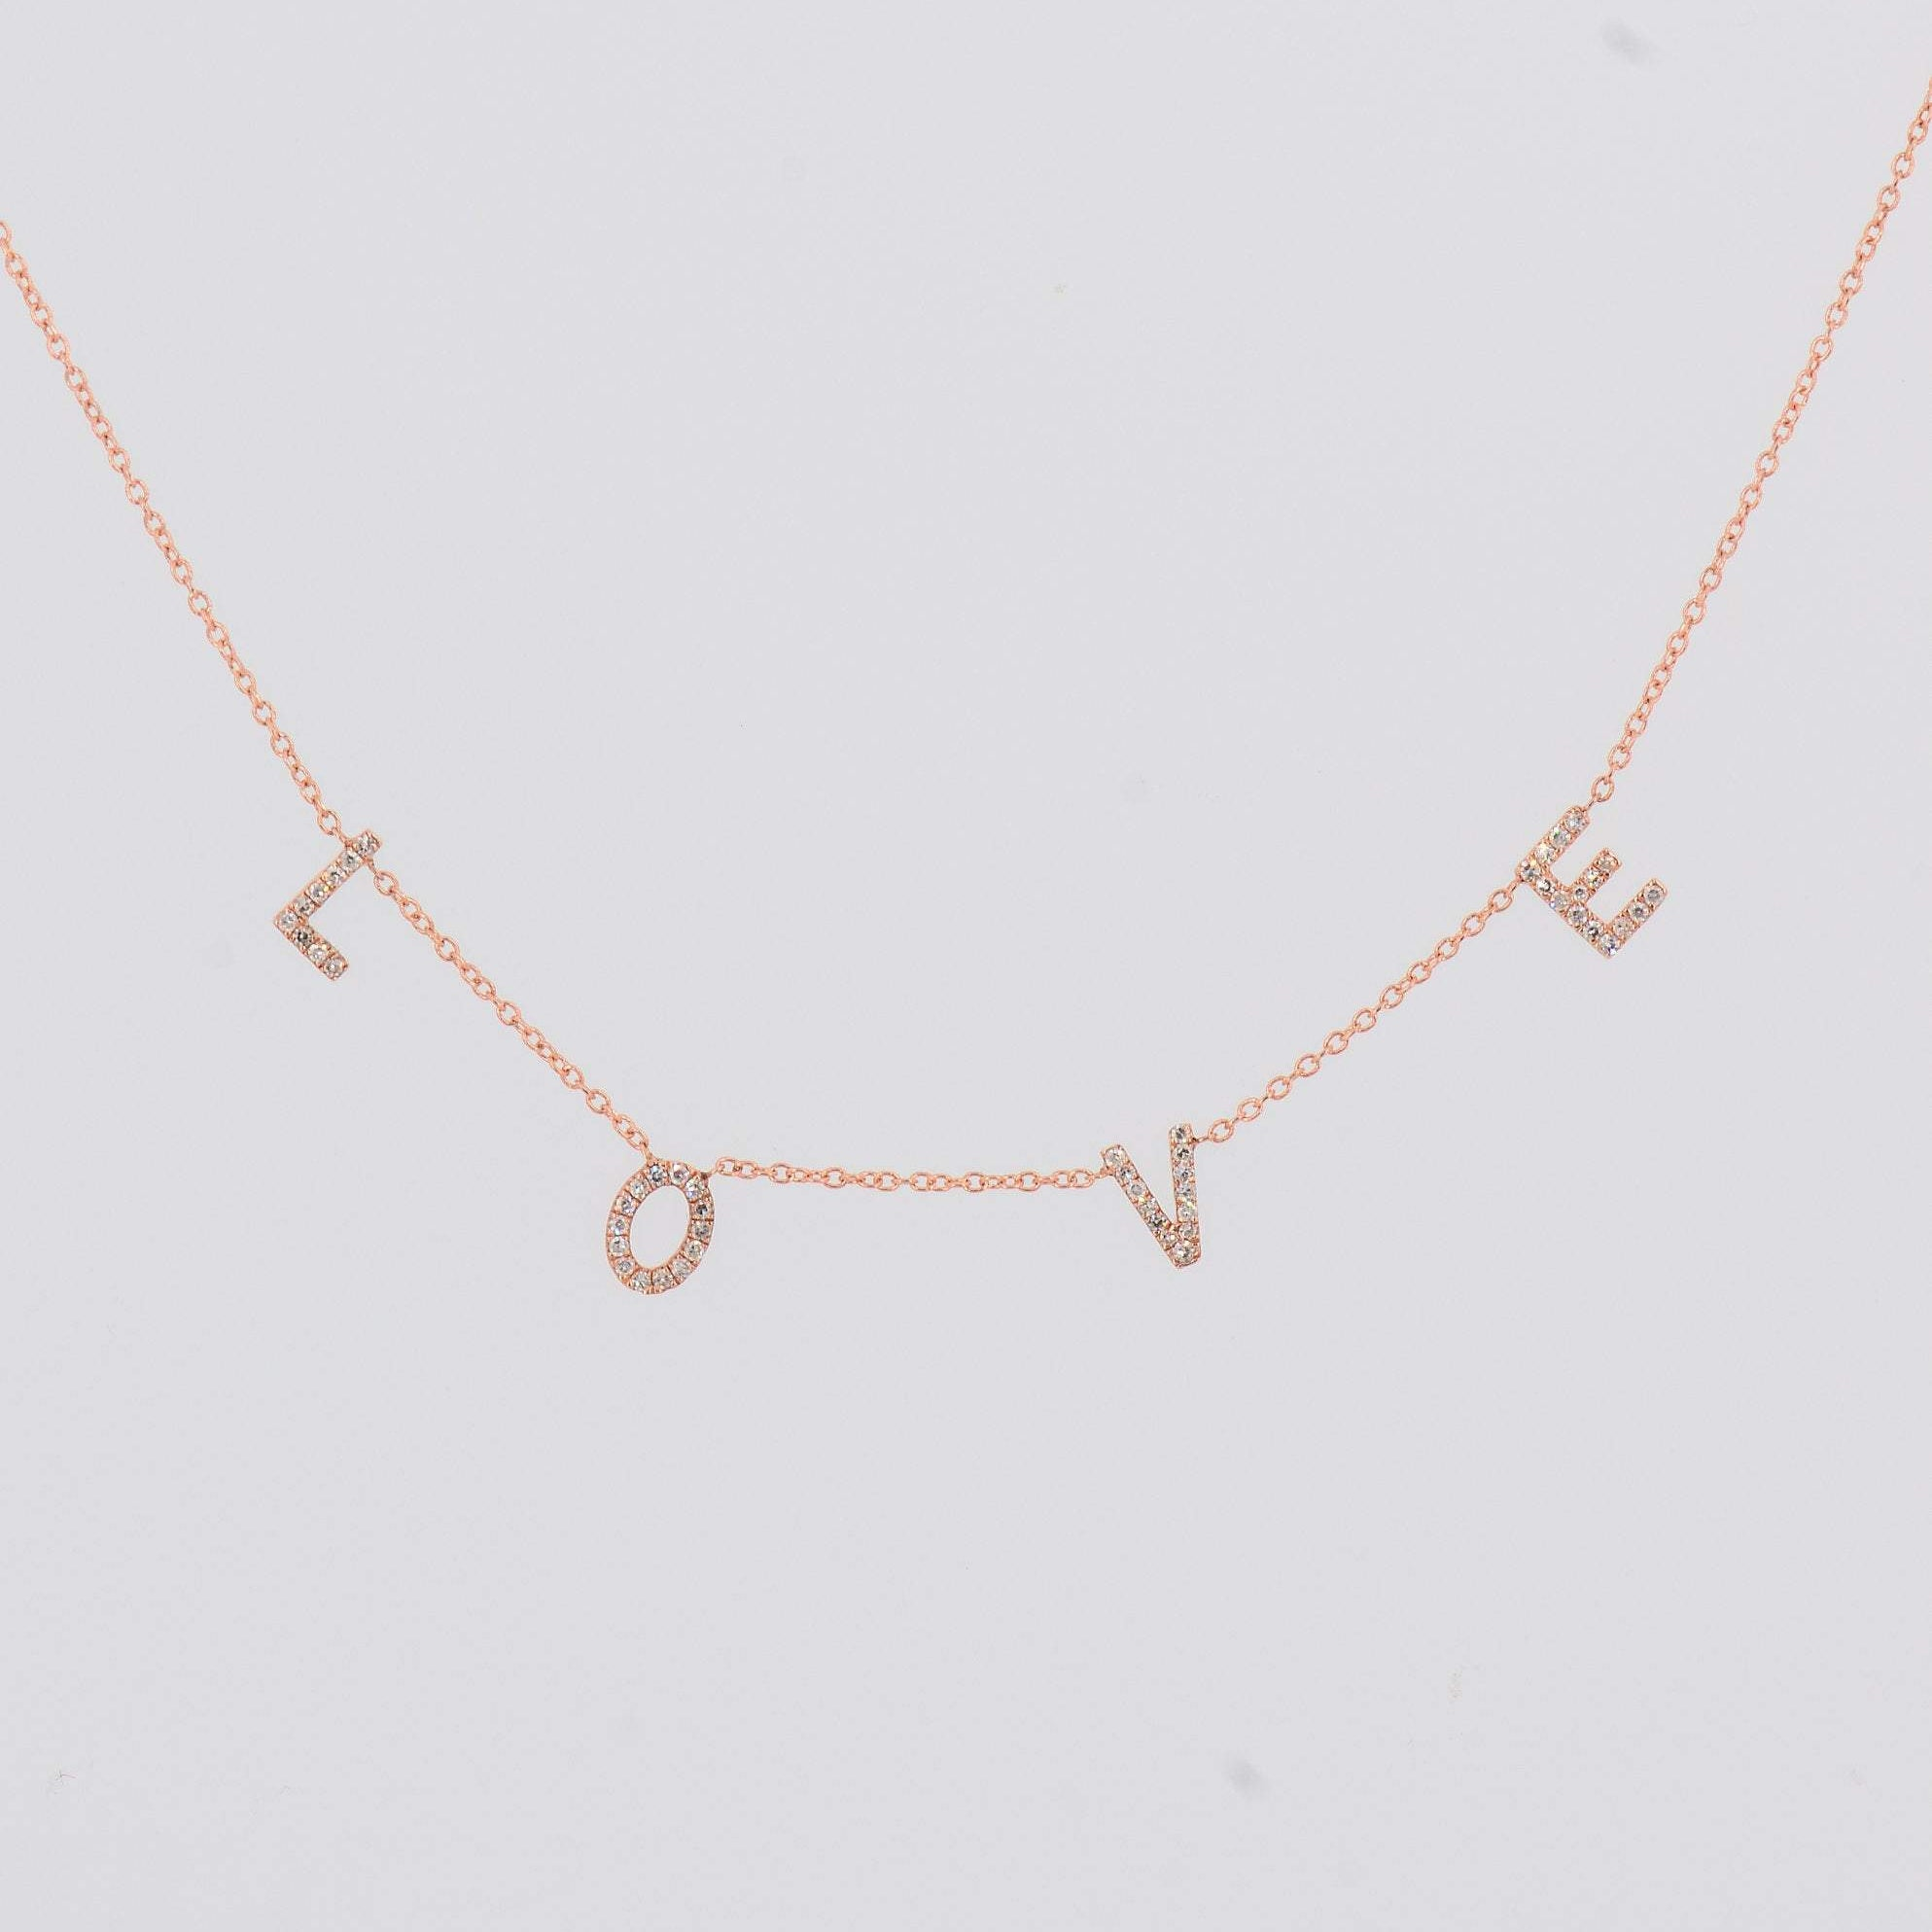 Love Necklace, Diamond Love Necklace